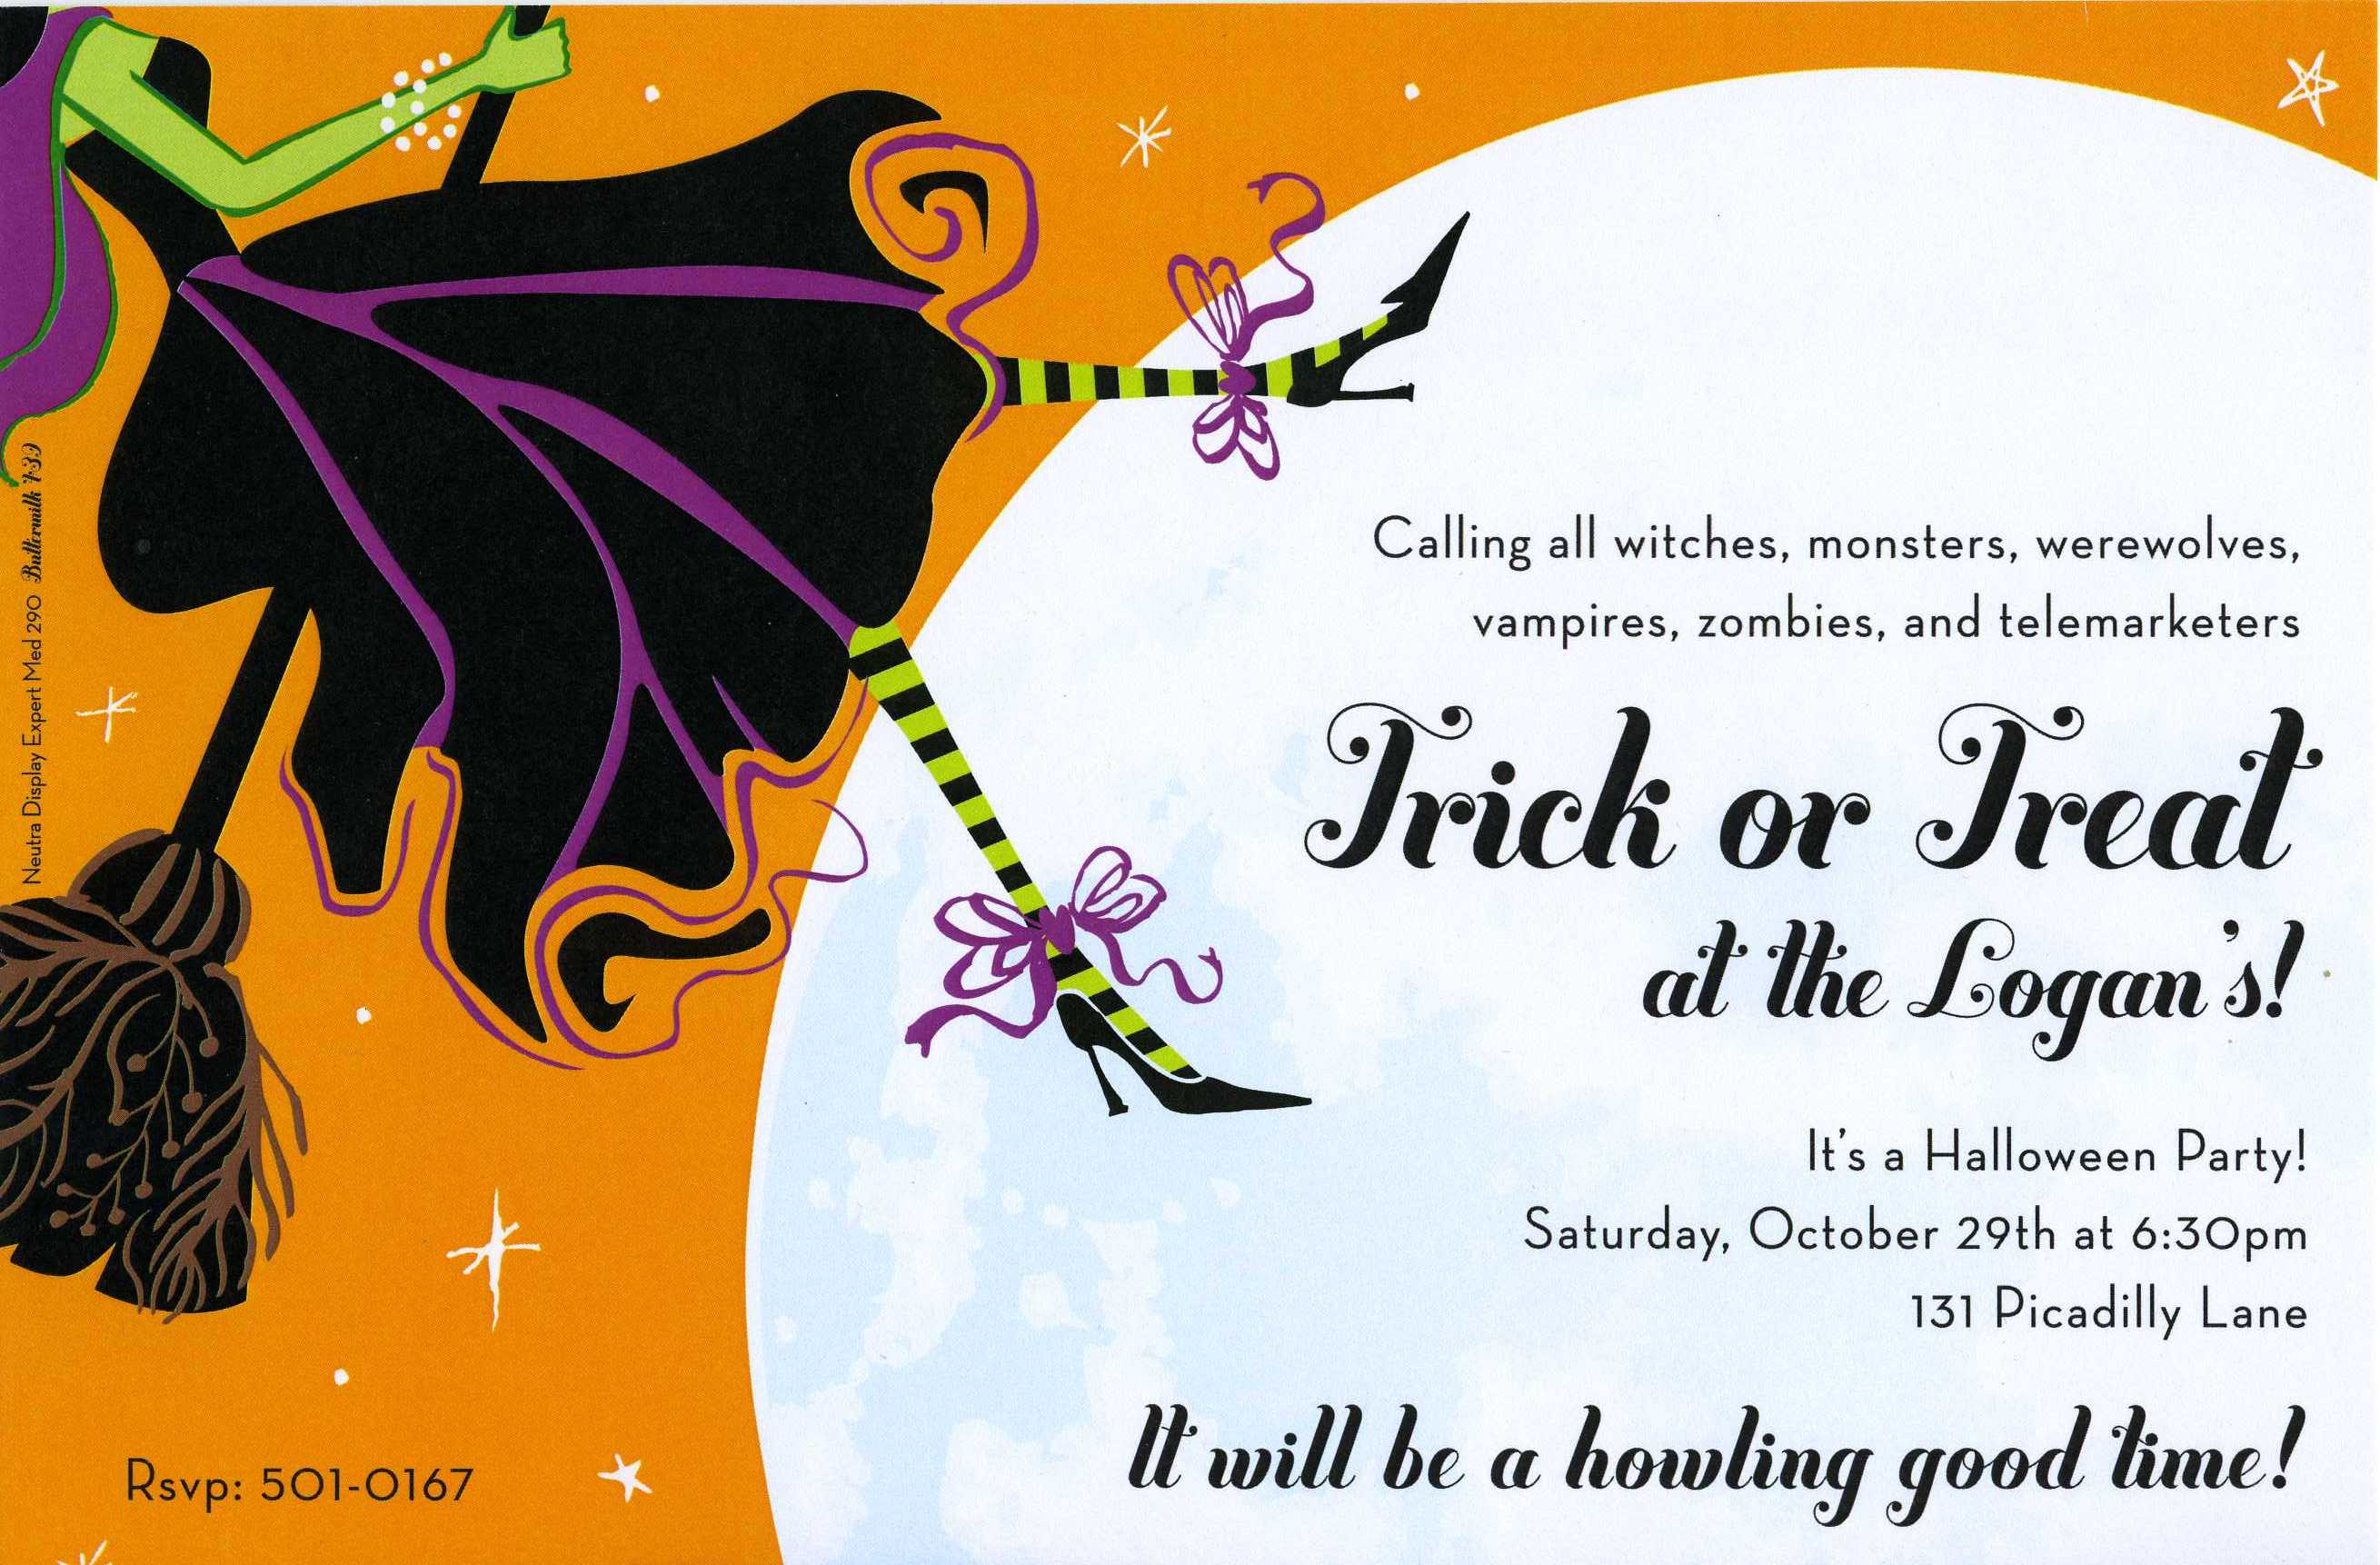 Halloween Invitation Clever Wording